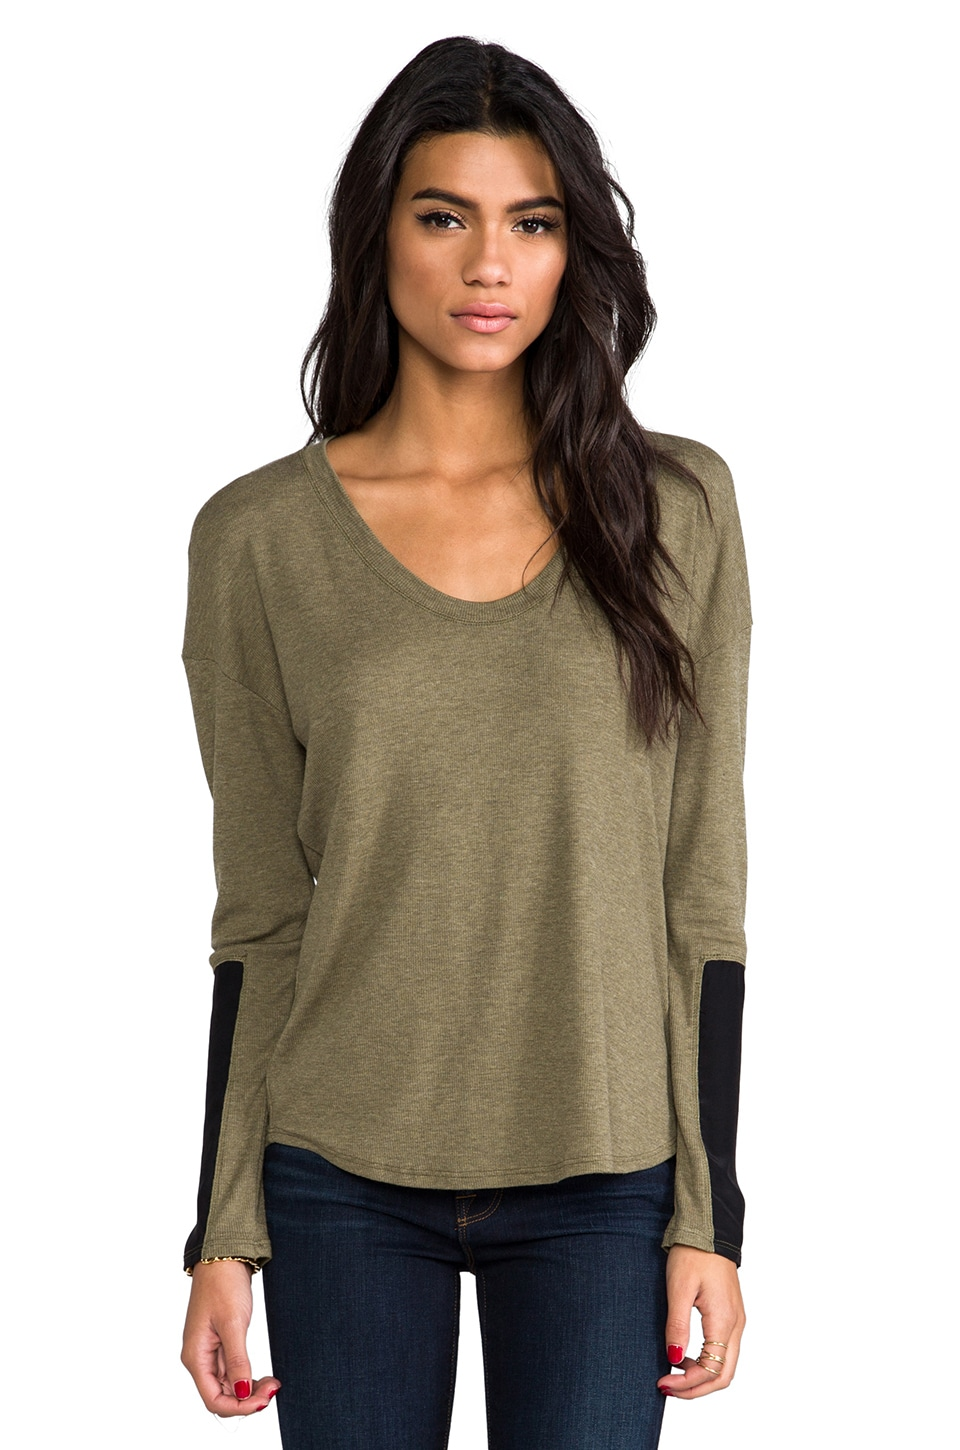 Heather Silk Block Sleeve Top in Heather Moss